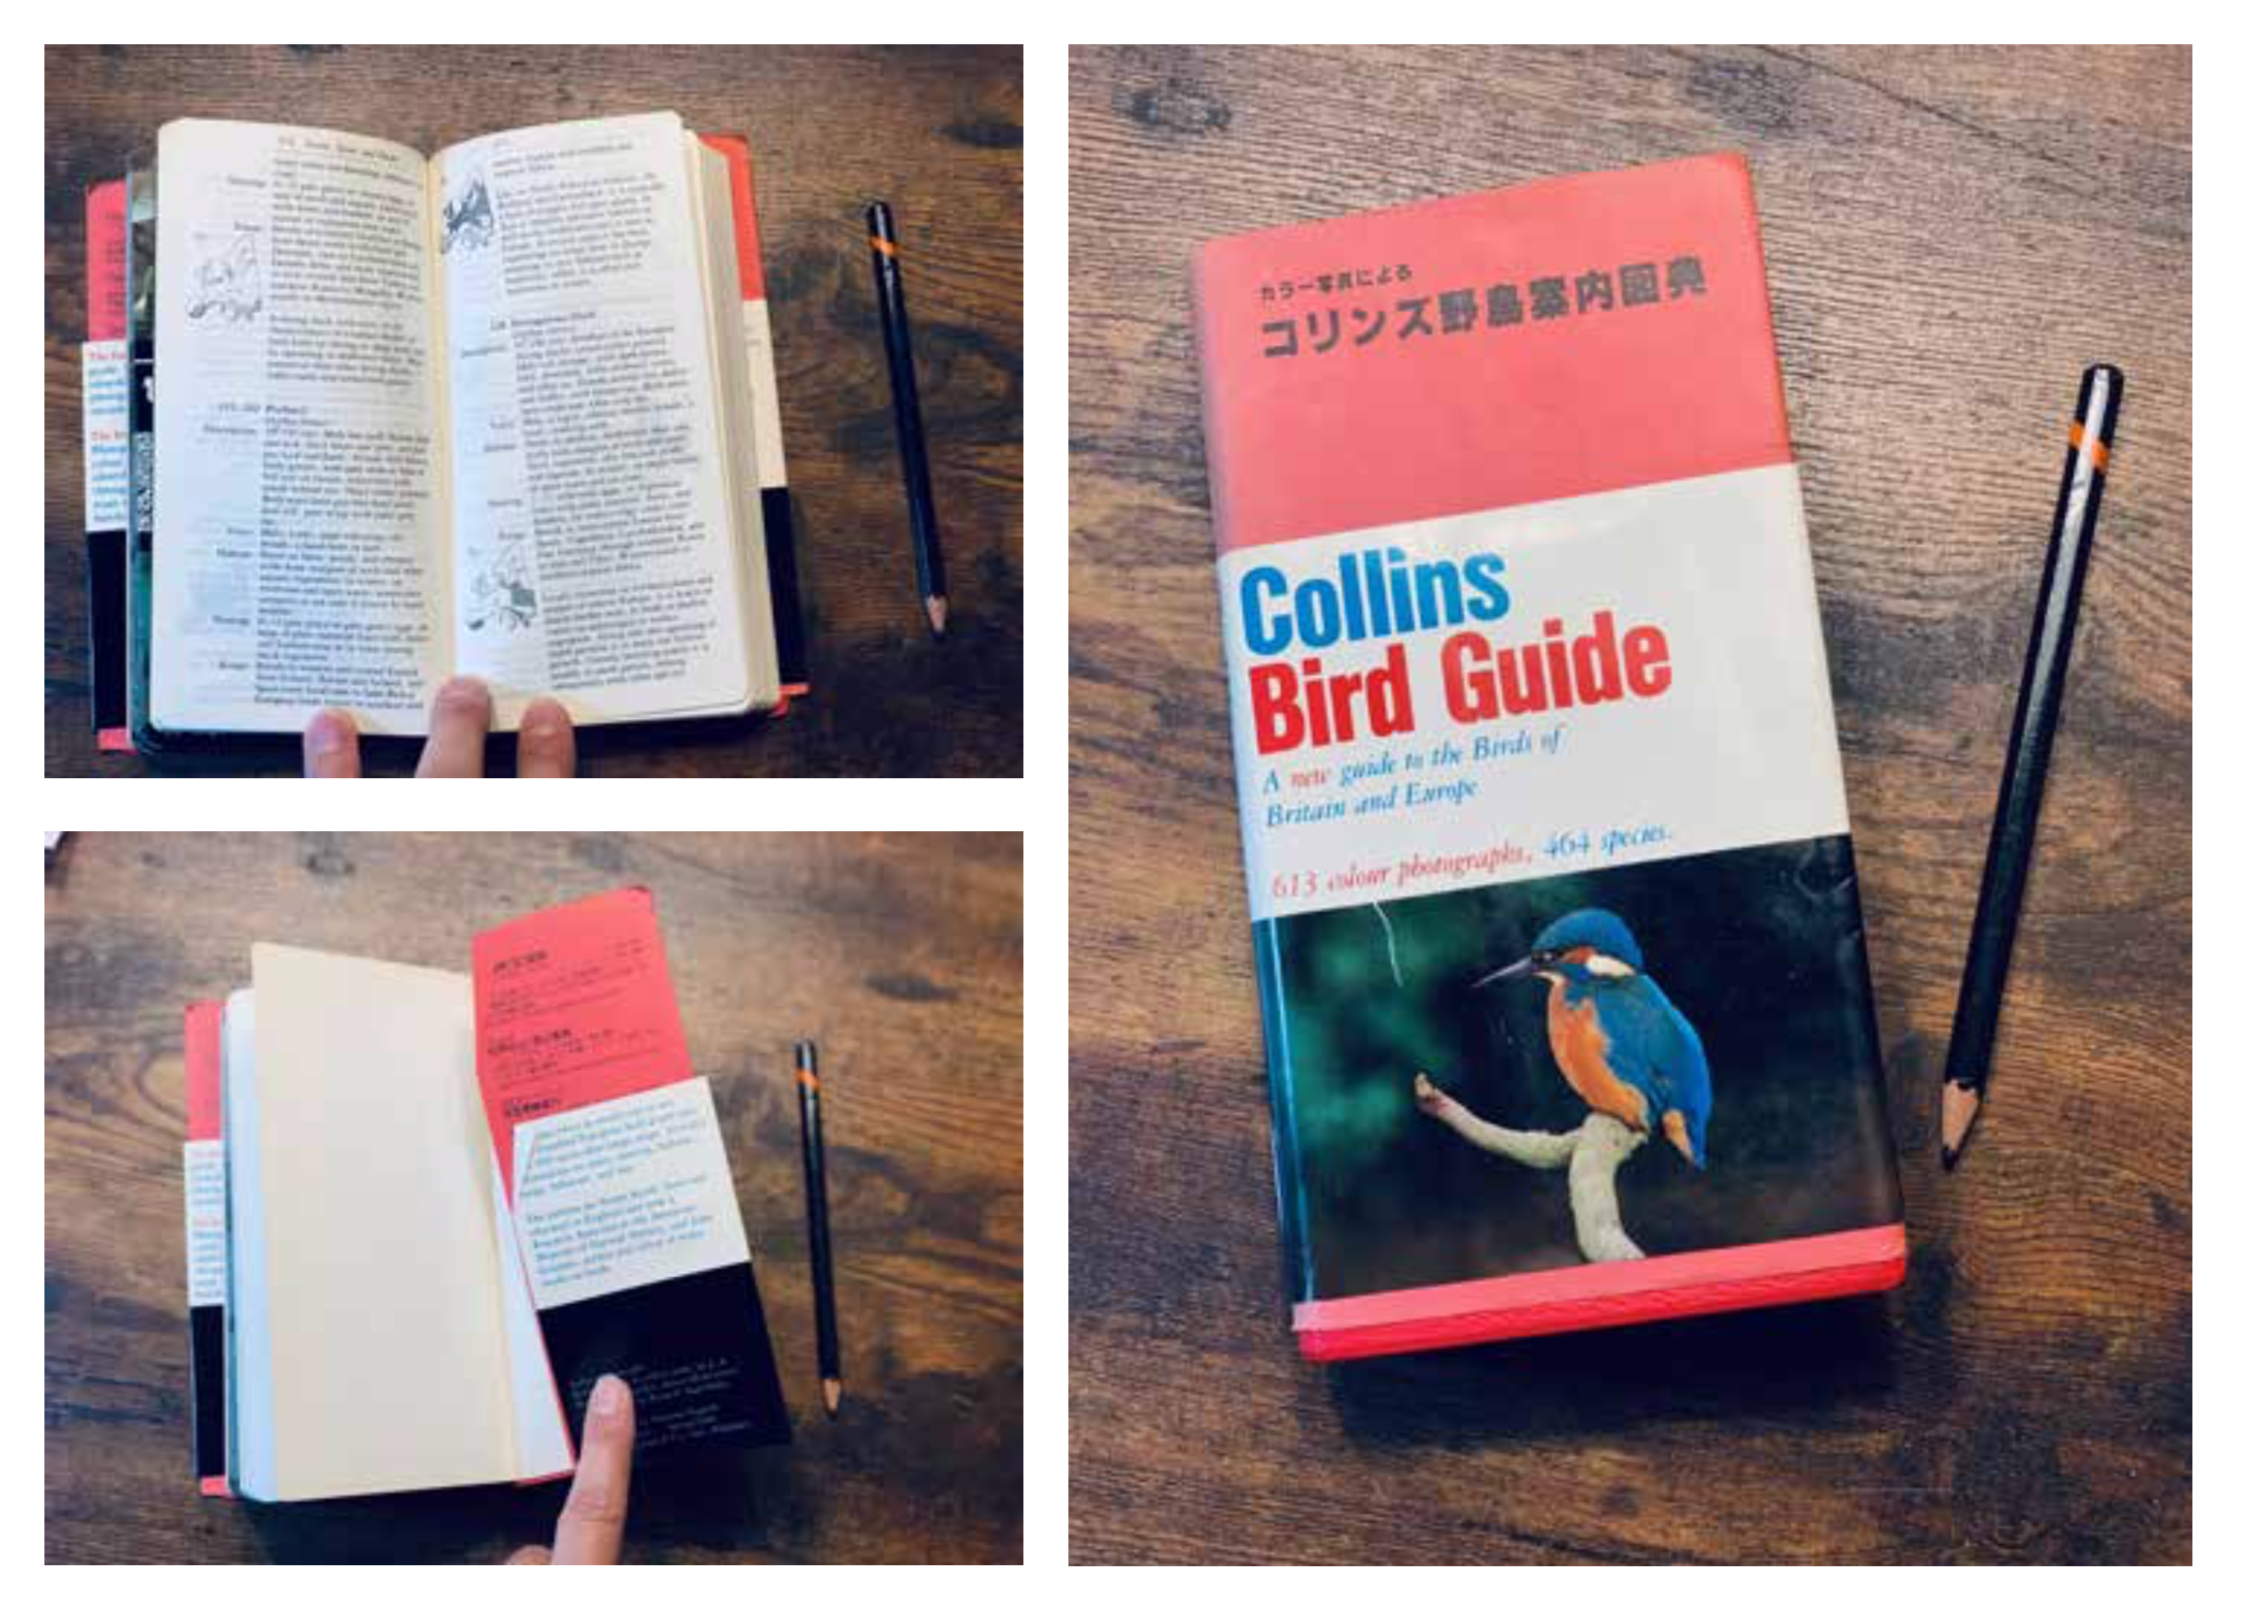 The  Collins Bird Guide  I found in an old bookshop was also a great inspiration for size, typography and binding.